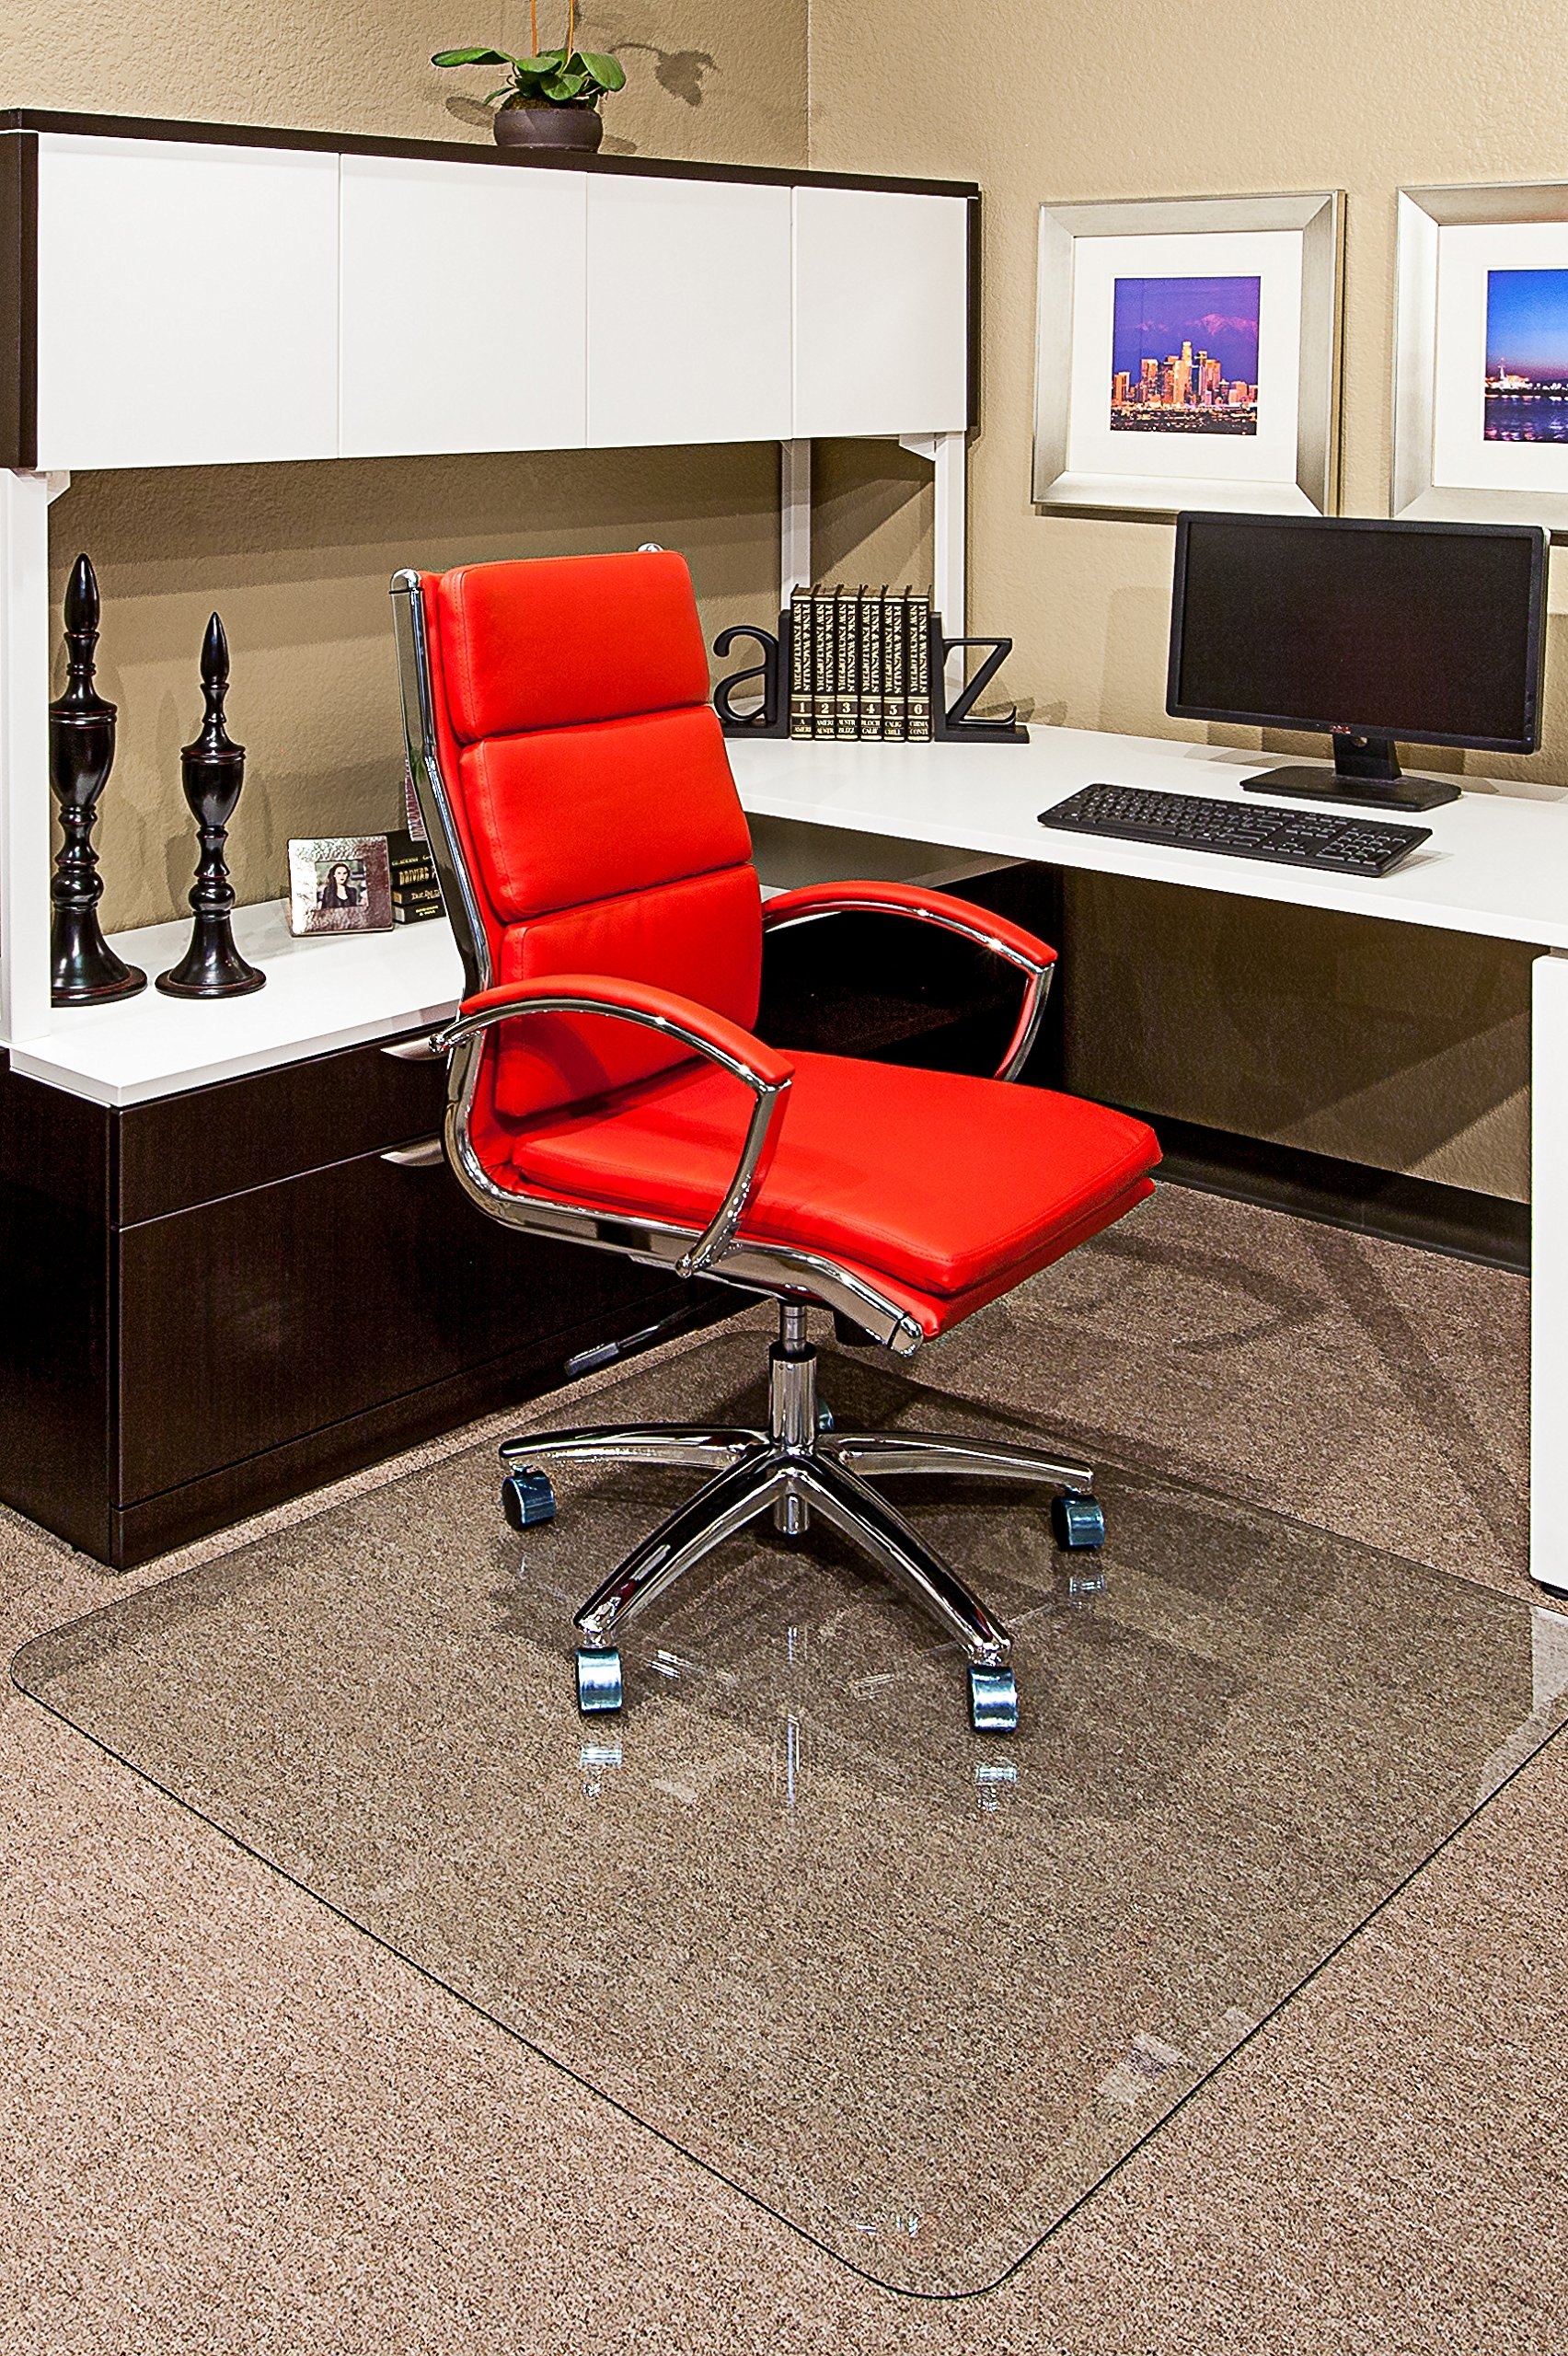 46'' x 46'' Clearly Innovative Lifetime Glass Chairmat with Patented Beveled Edges